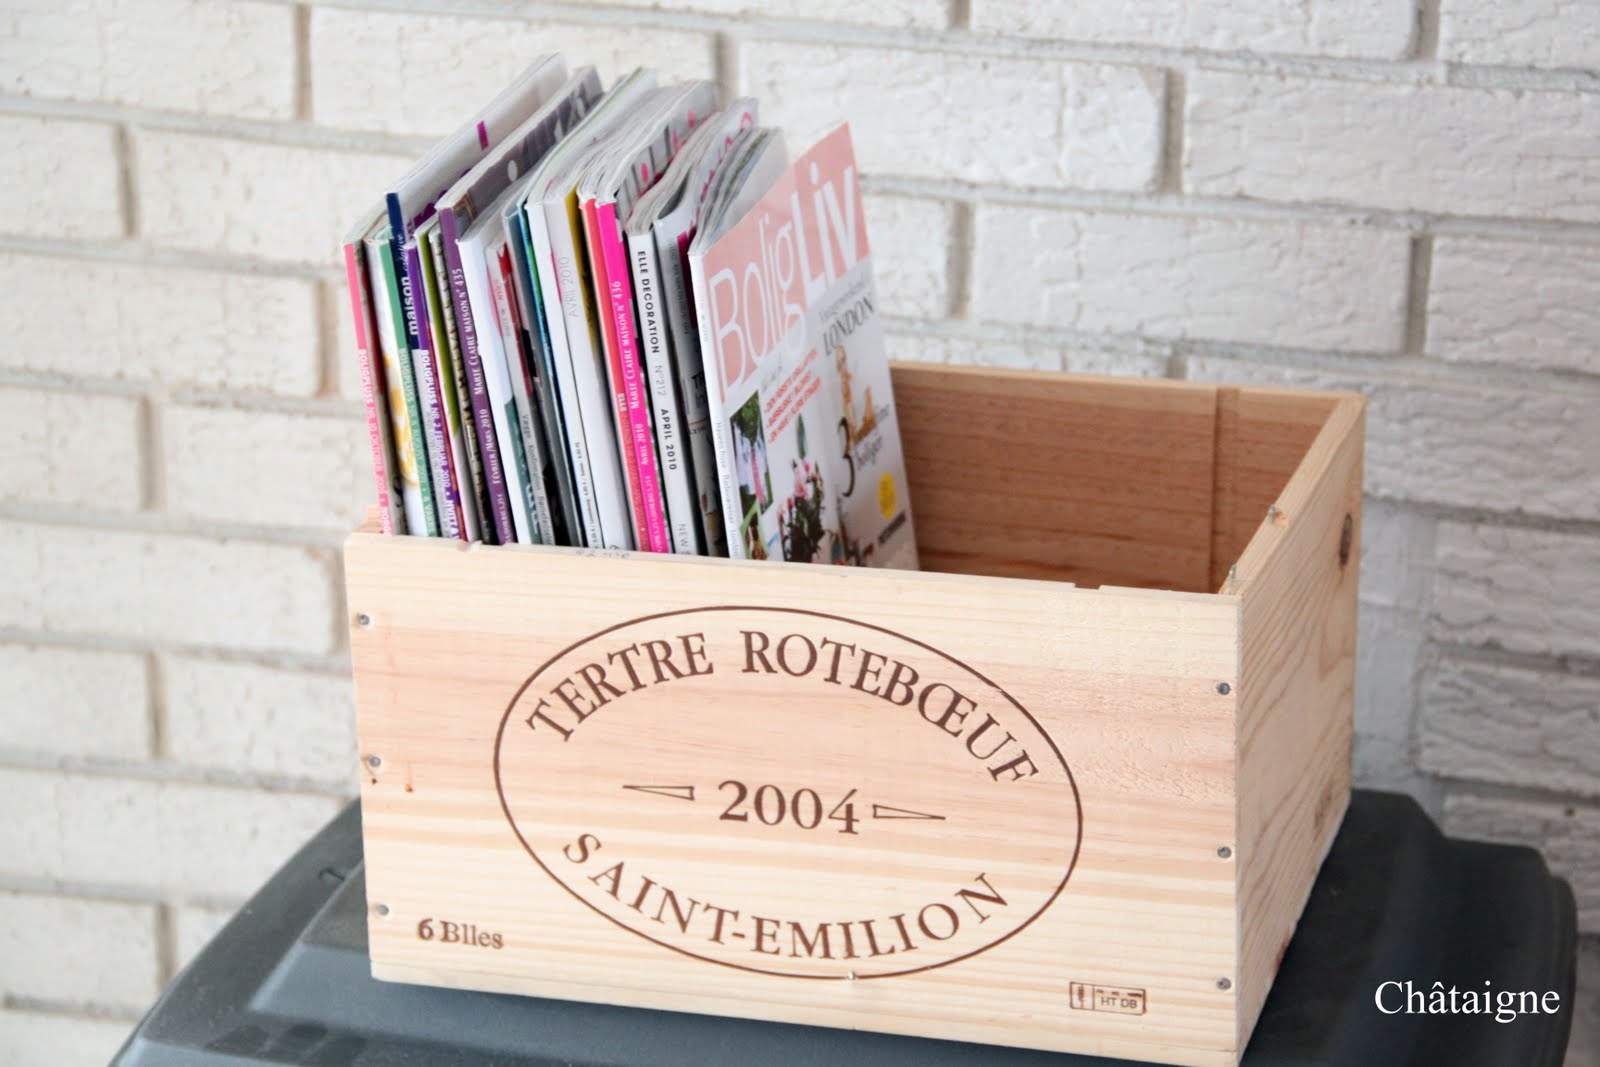 How to use wine boxes as awesome shelving raven tao for Small wine crates